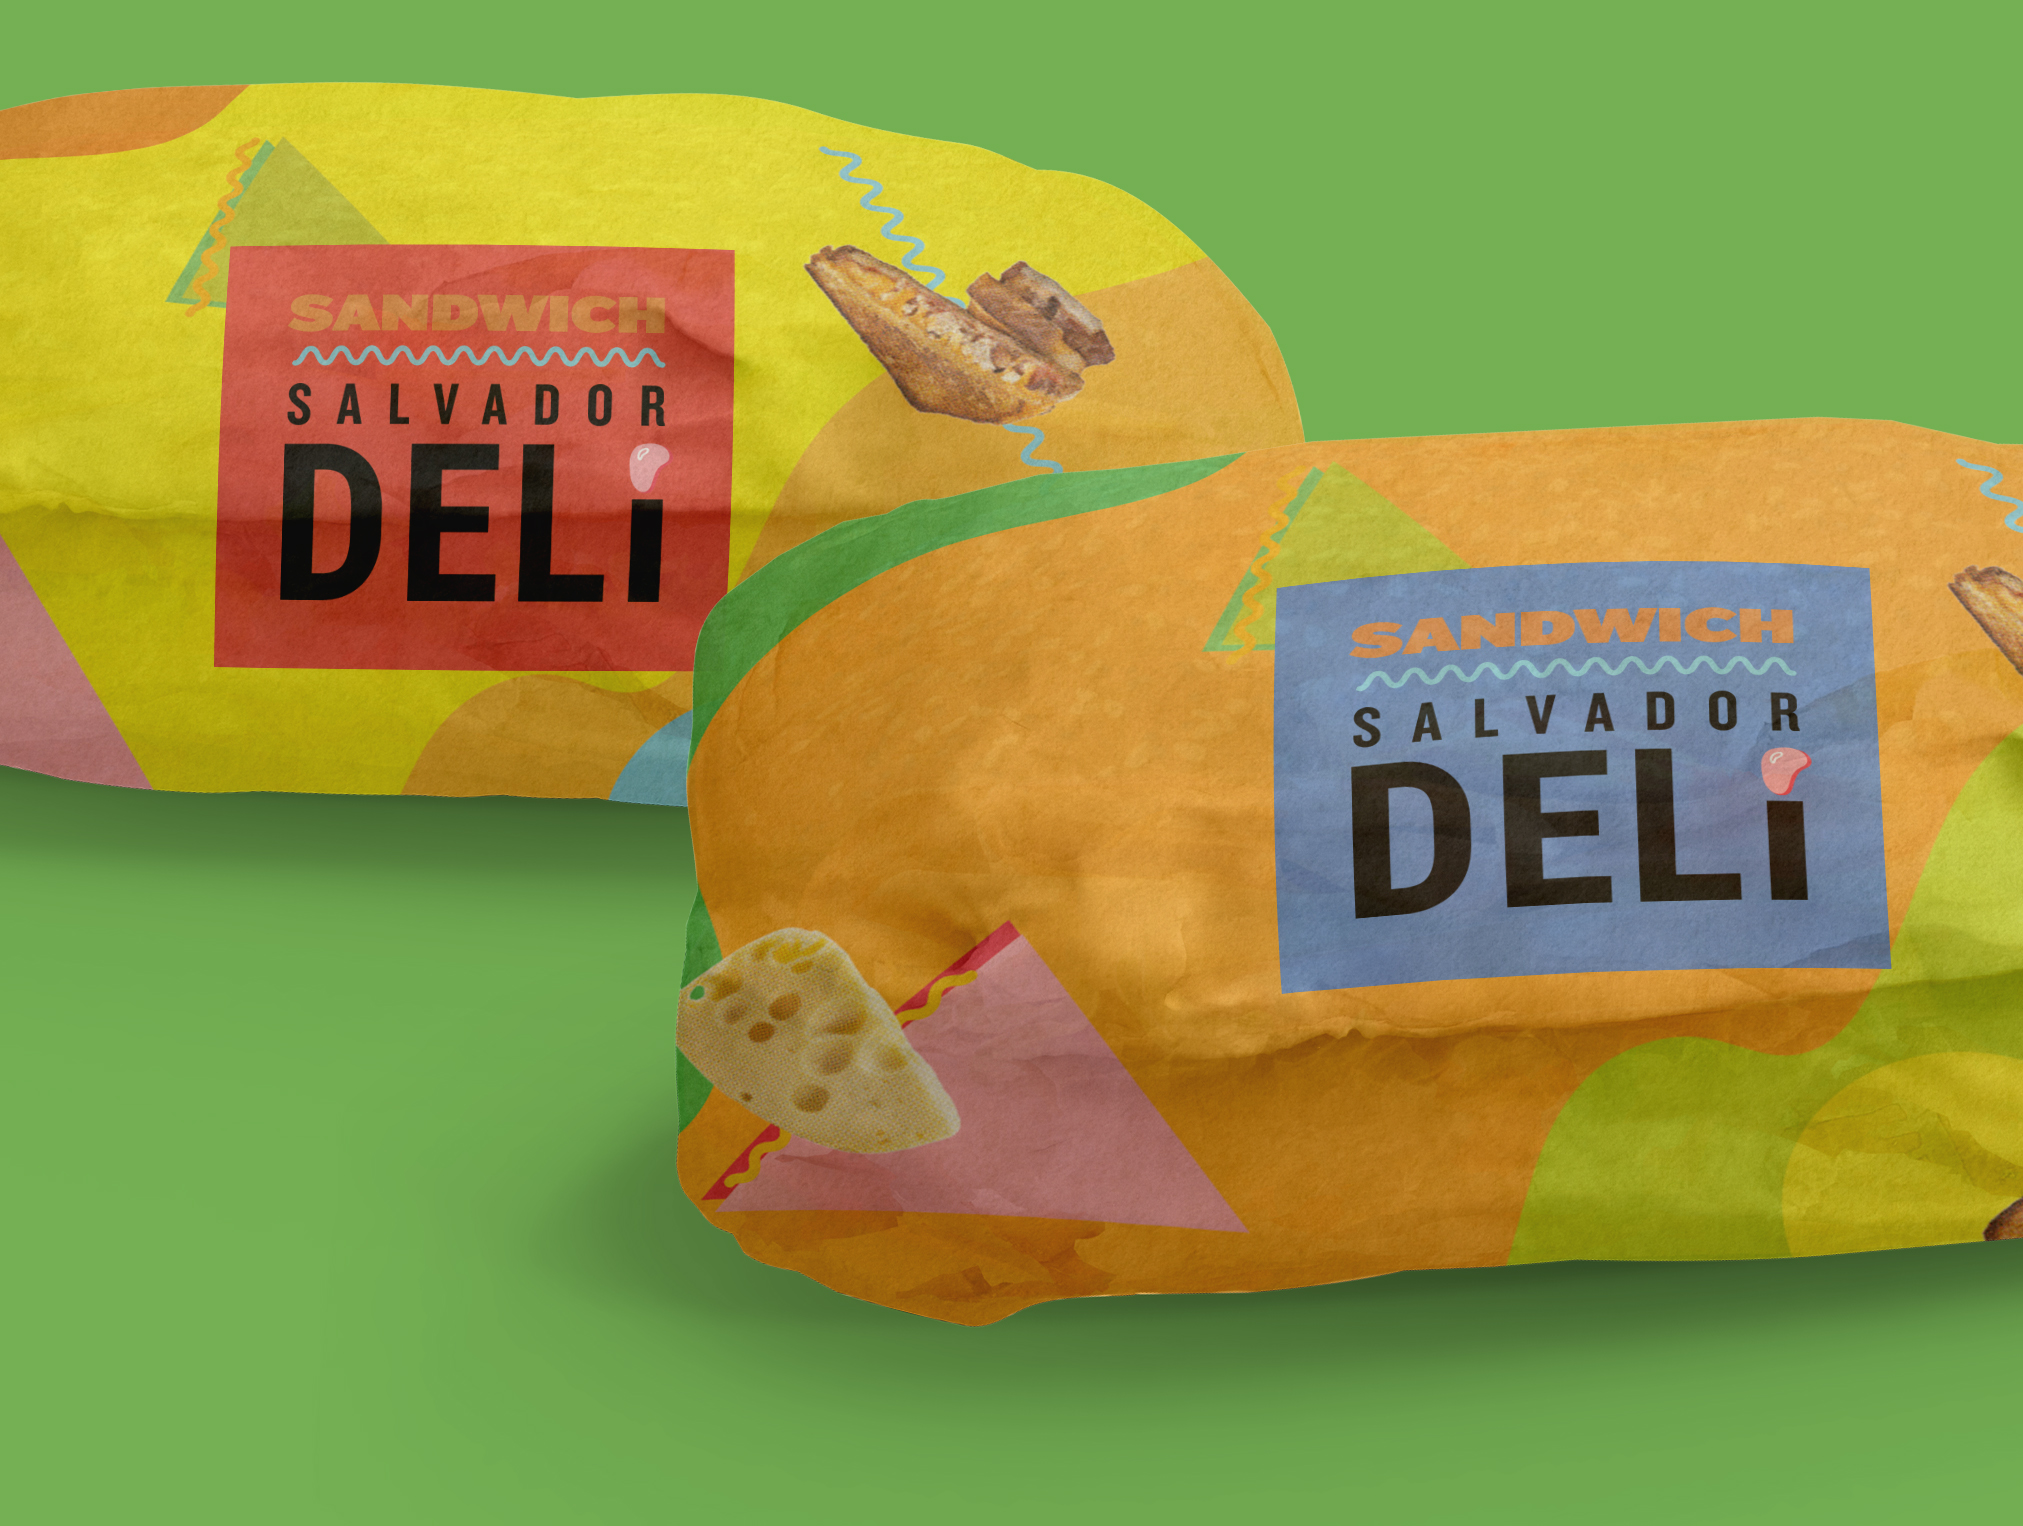 sandwich_wrapping_detail.jpg